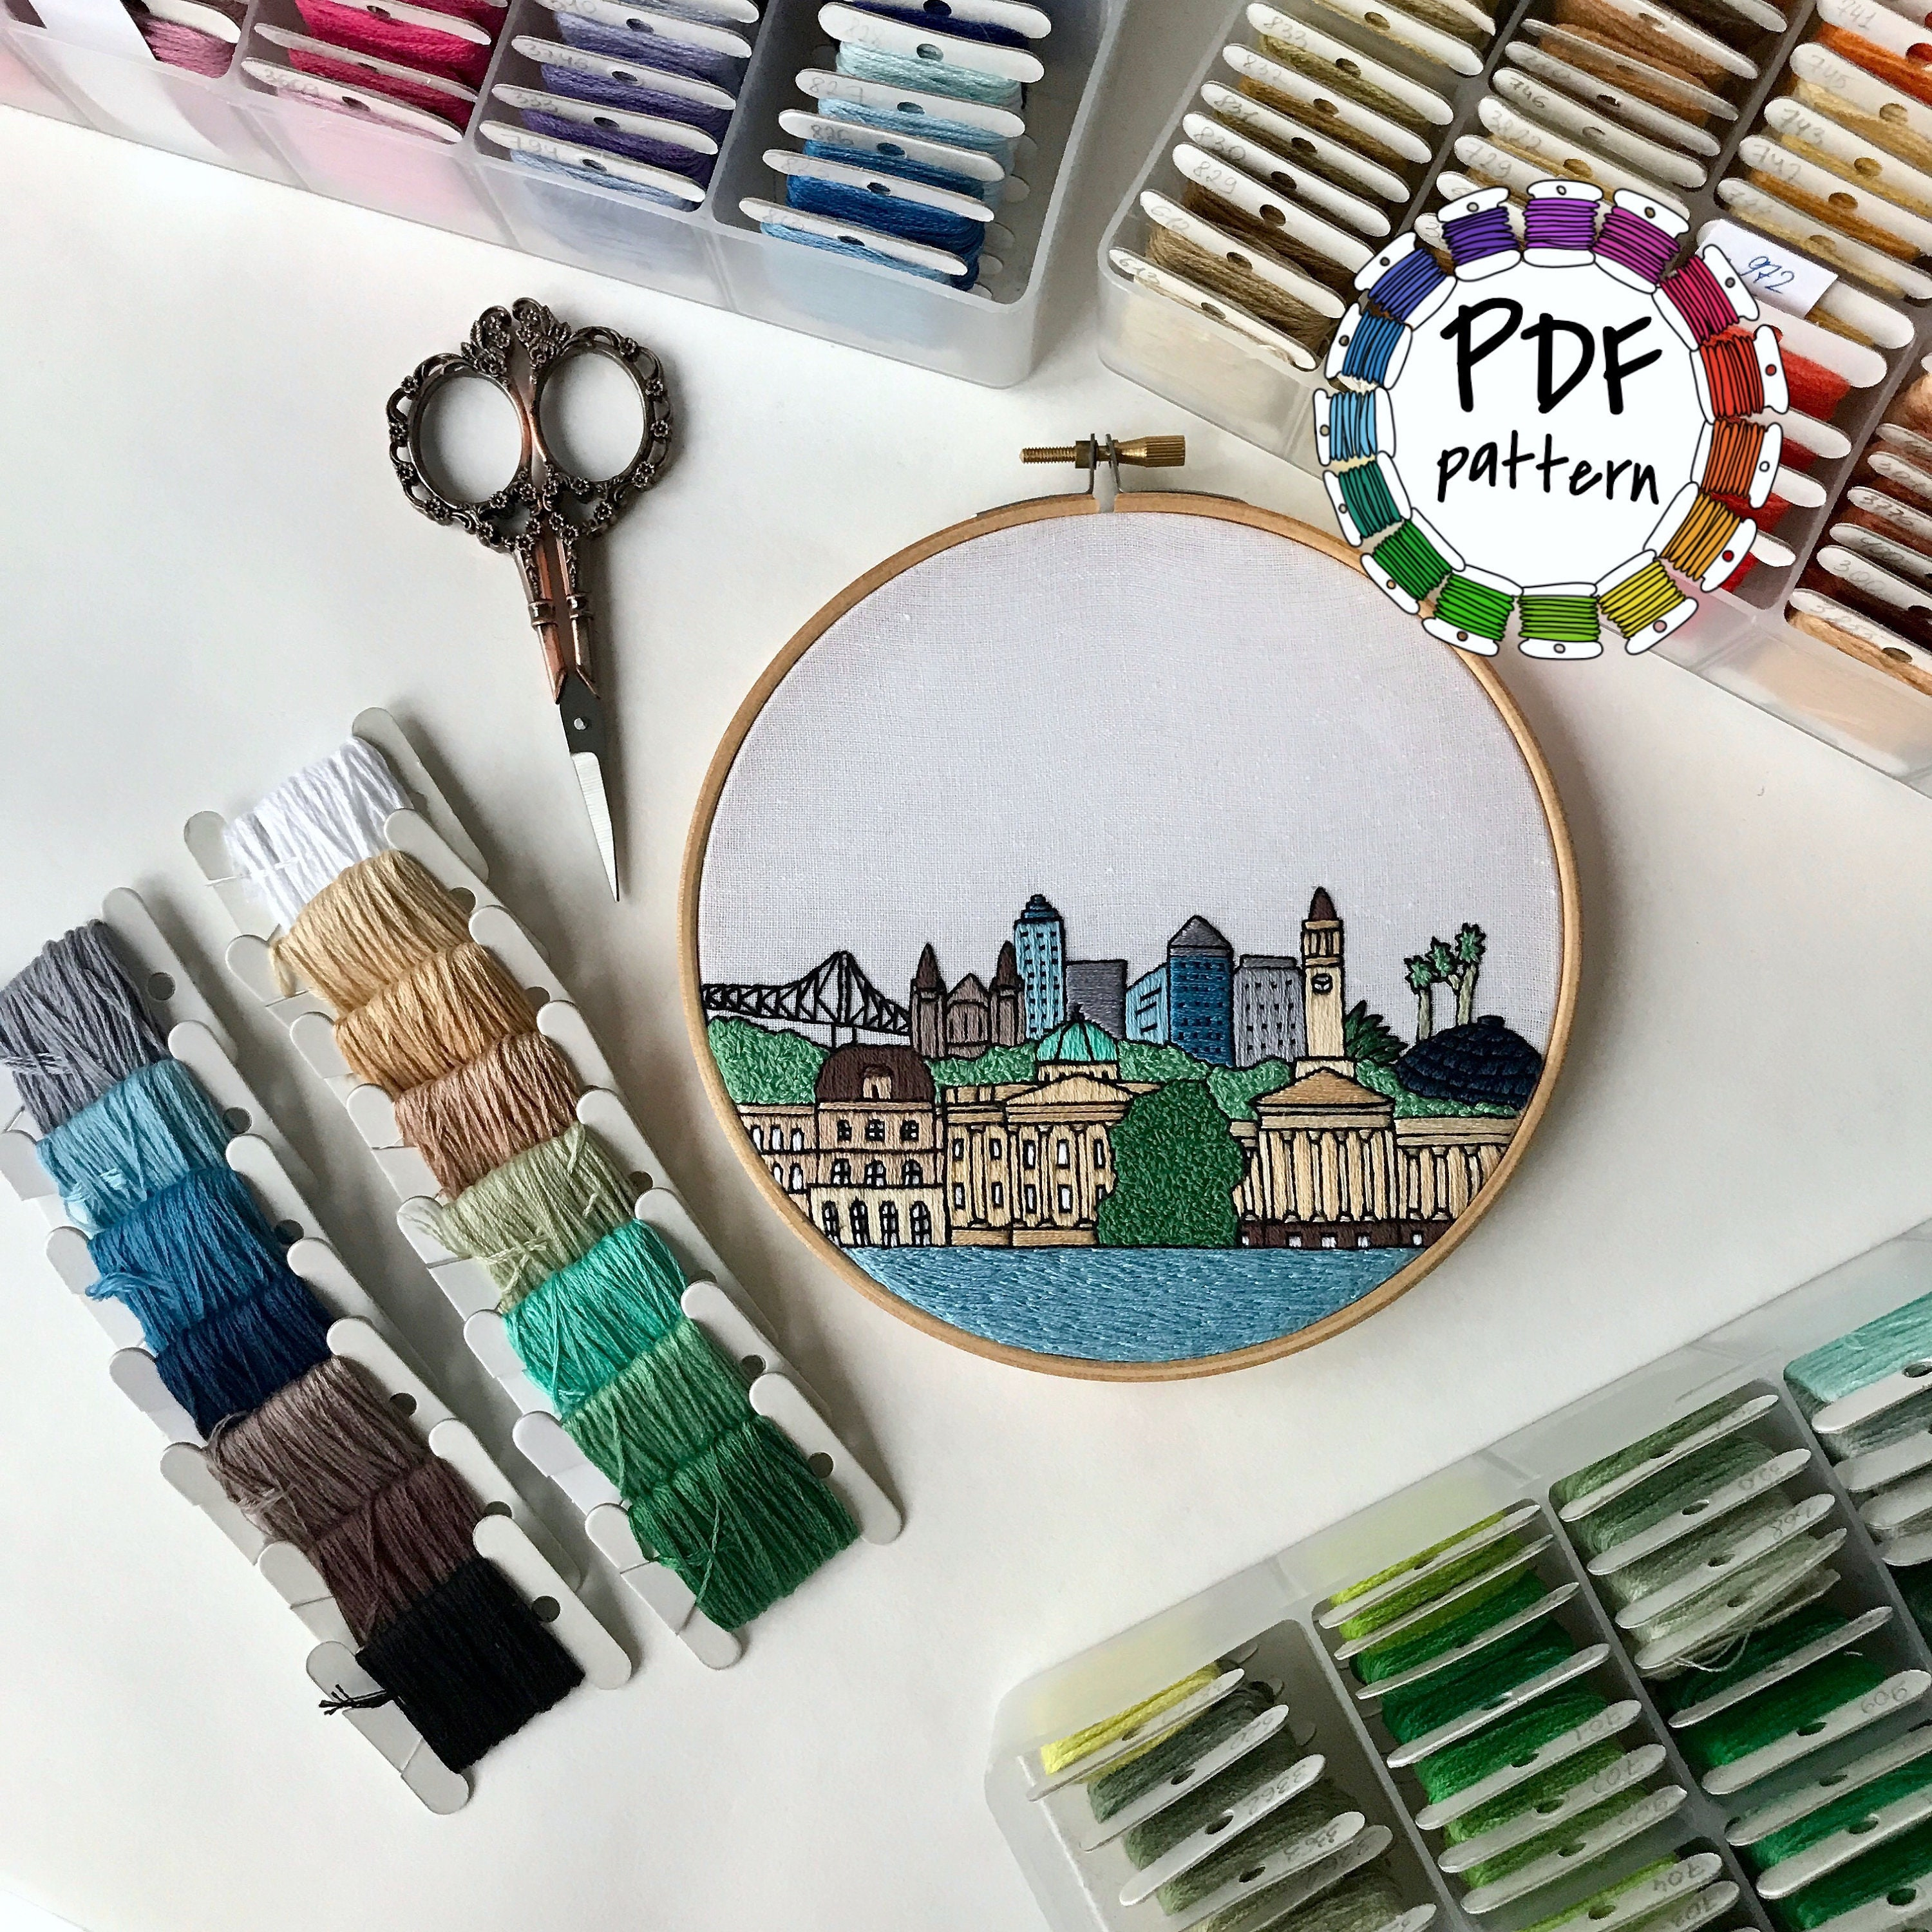 Brisbane Australia Hand Embroidery pattern PDF. DIY. Embroidery Hoop art,  Wall Decor, Housewarming Gift. Free Hand embroidery guide